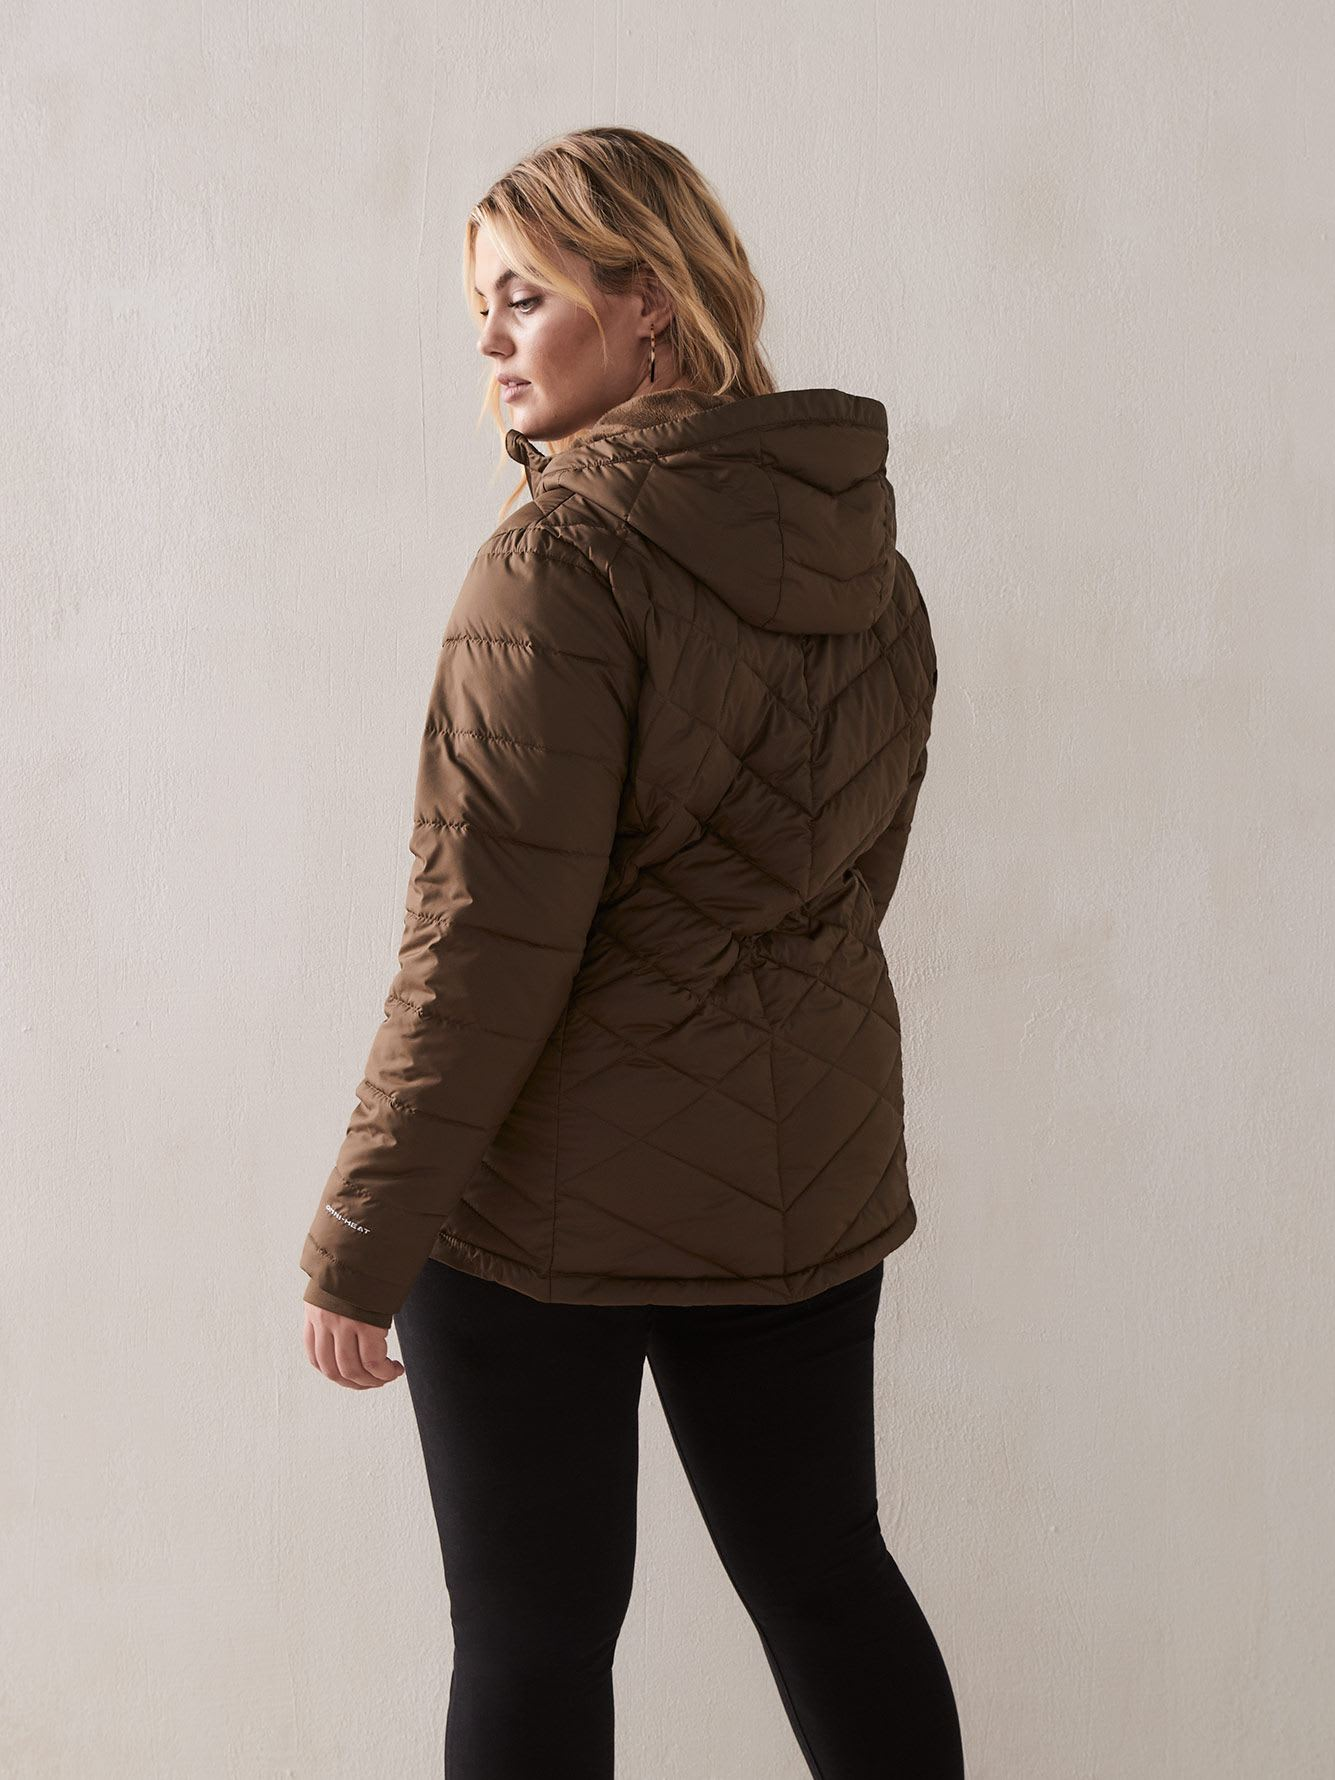 Heavenly Hooded Short Jacket - Columbia